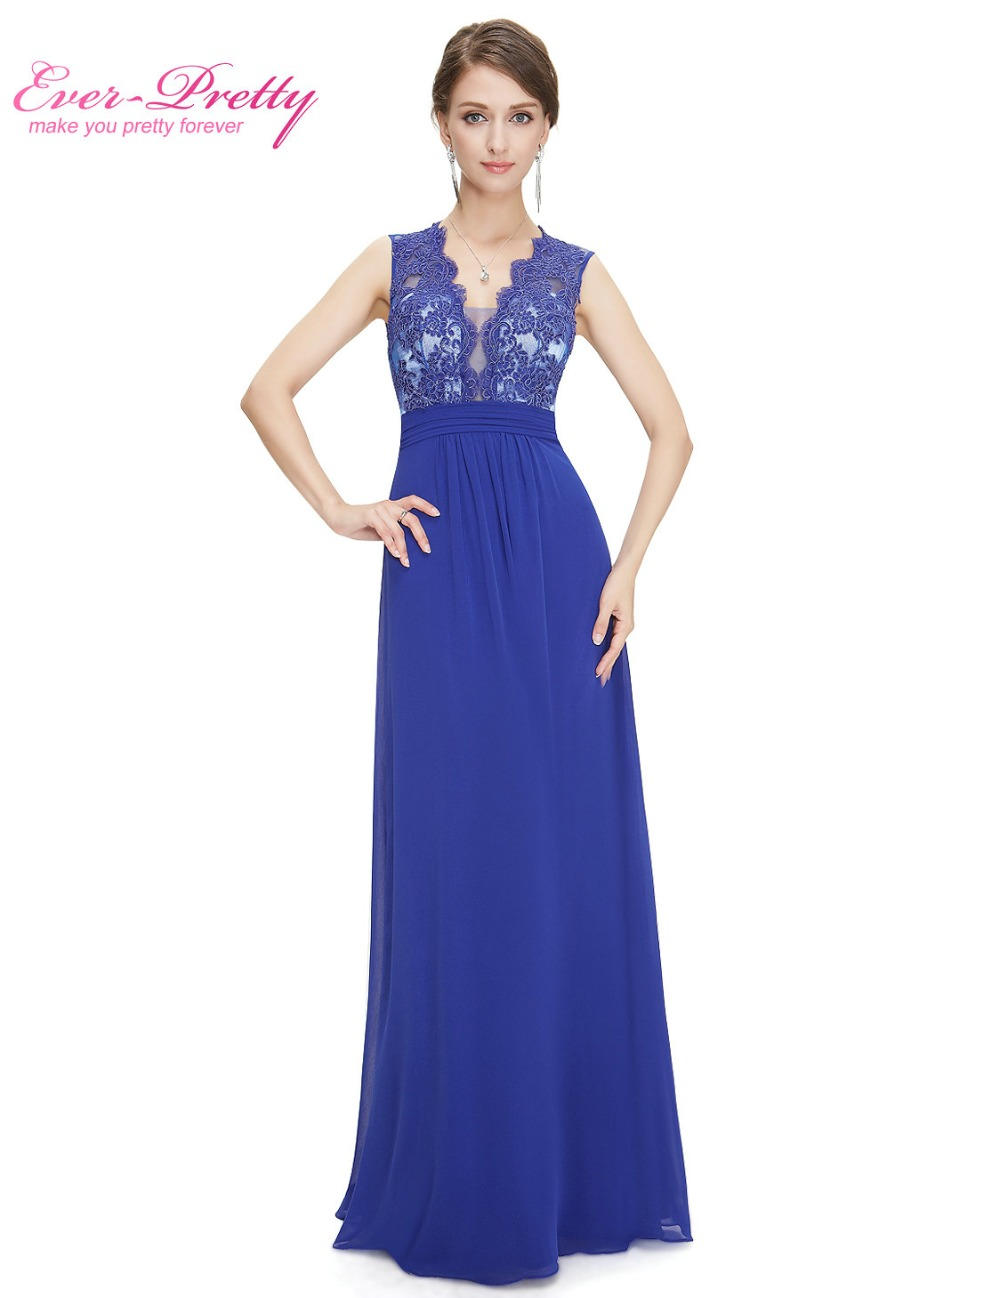 Compare Prices on Lace Semi Formal Dress- Online Shopping/Buy Low ...